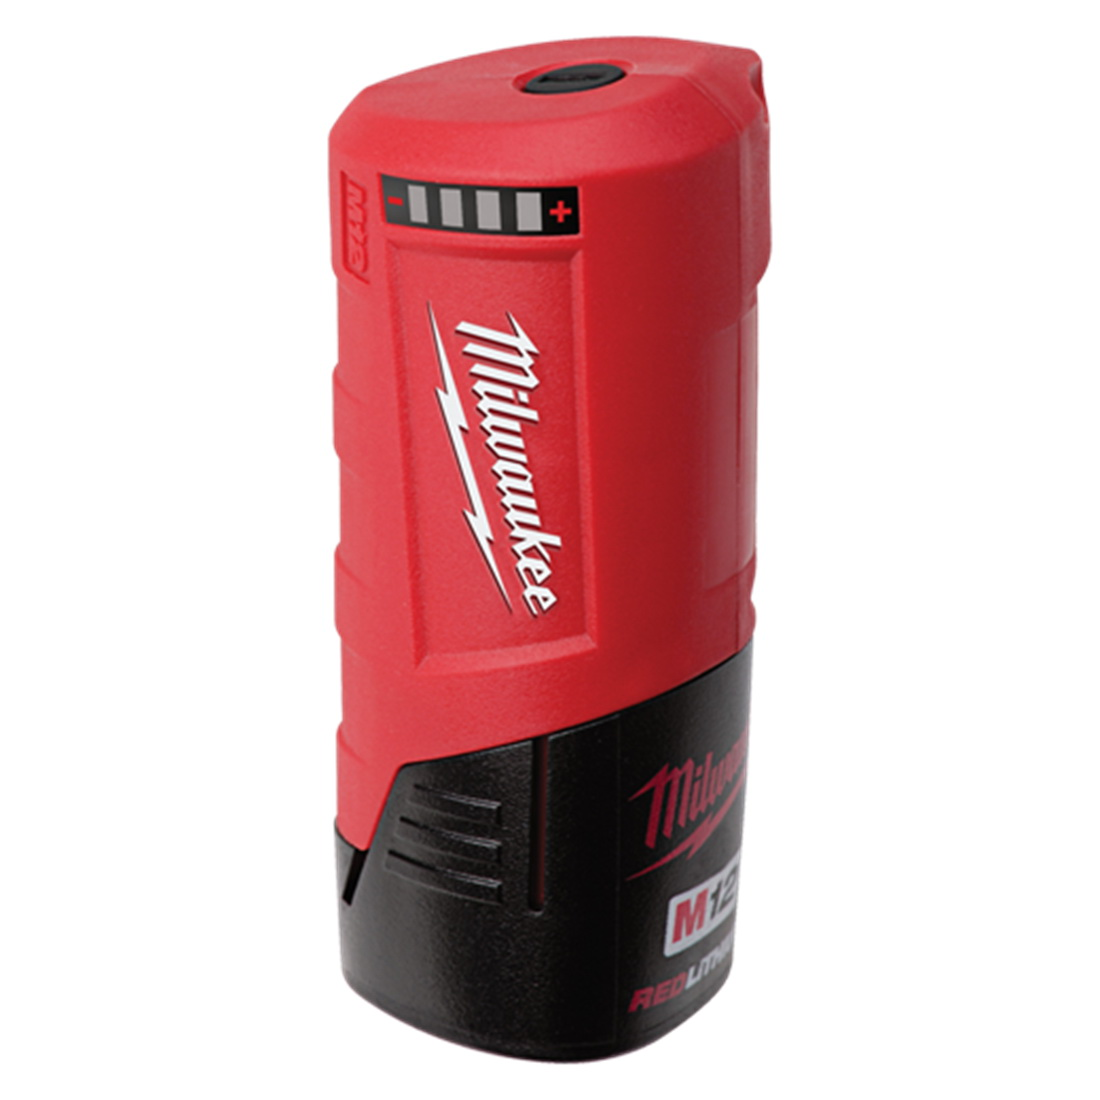 M12 Cordless Power Source (Tool Only)